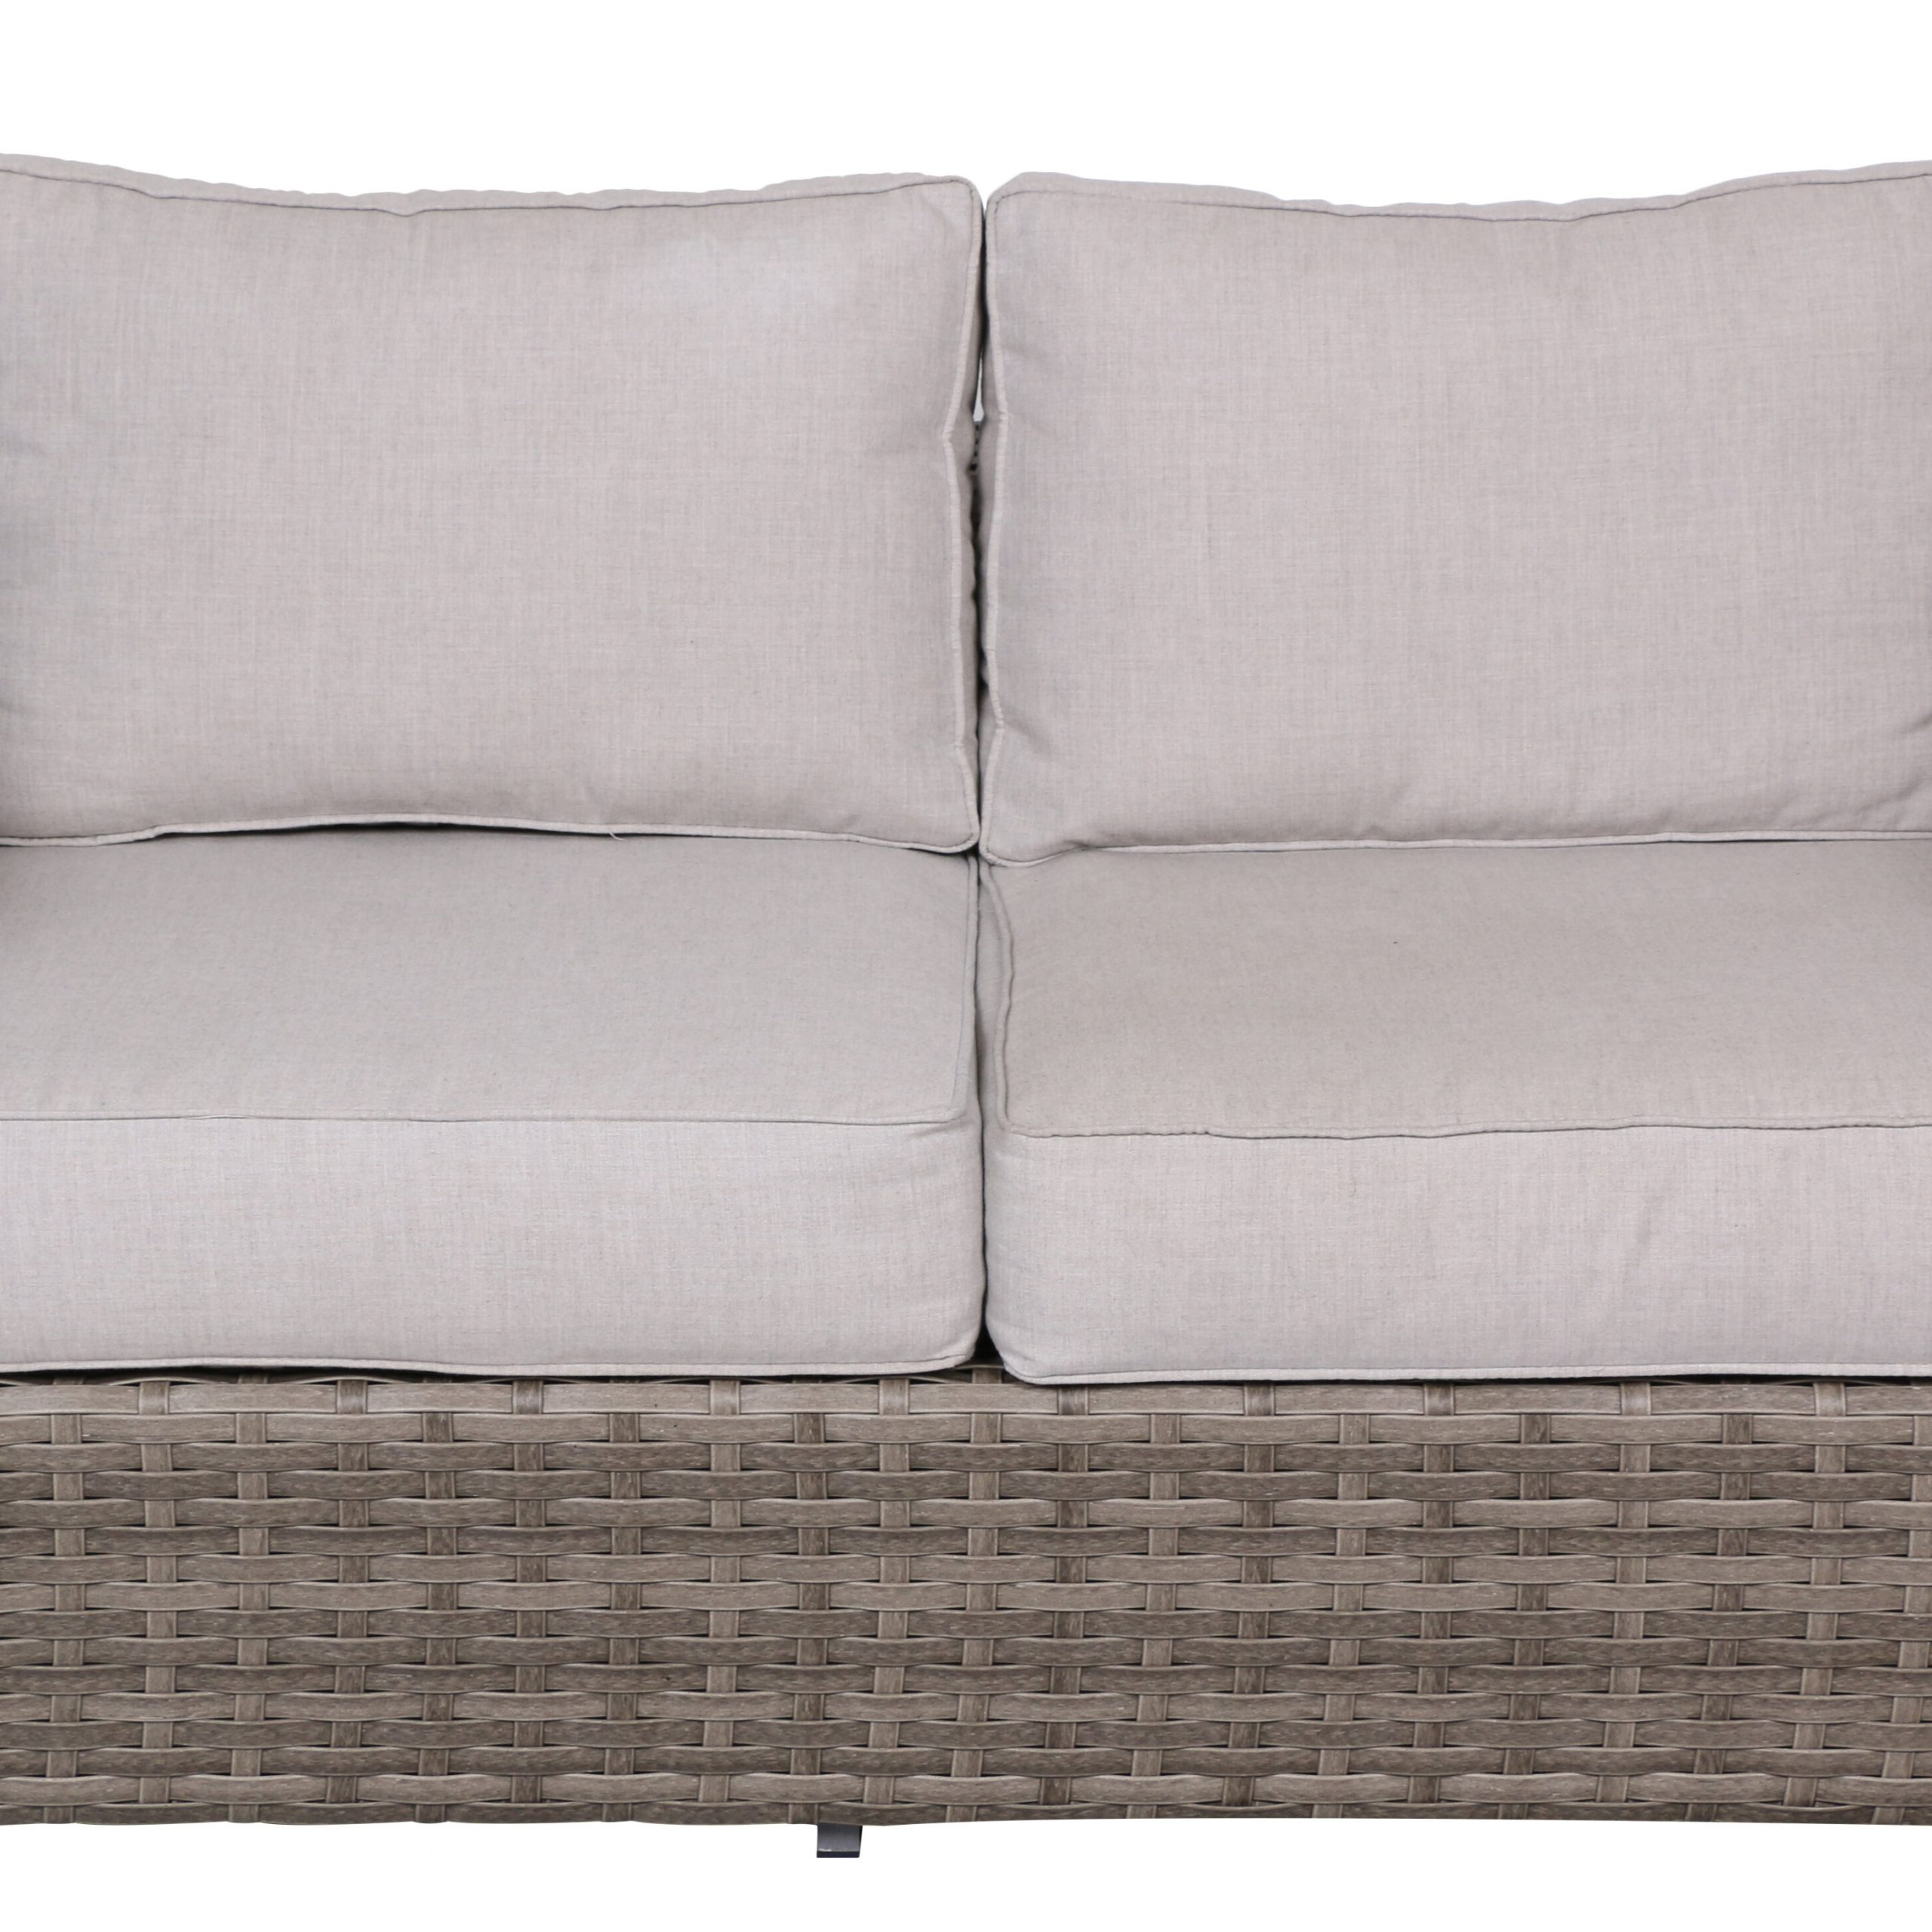 Most Popular Kaiser Loveseat With Cushions For Linwood Loveseats With Cushions (View 3 of 25)